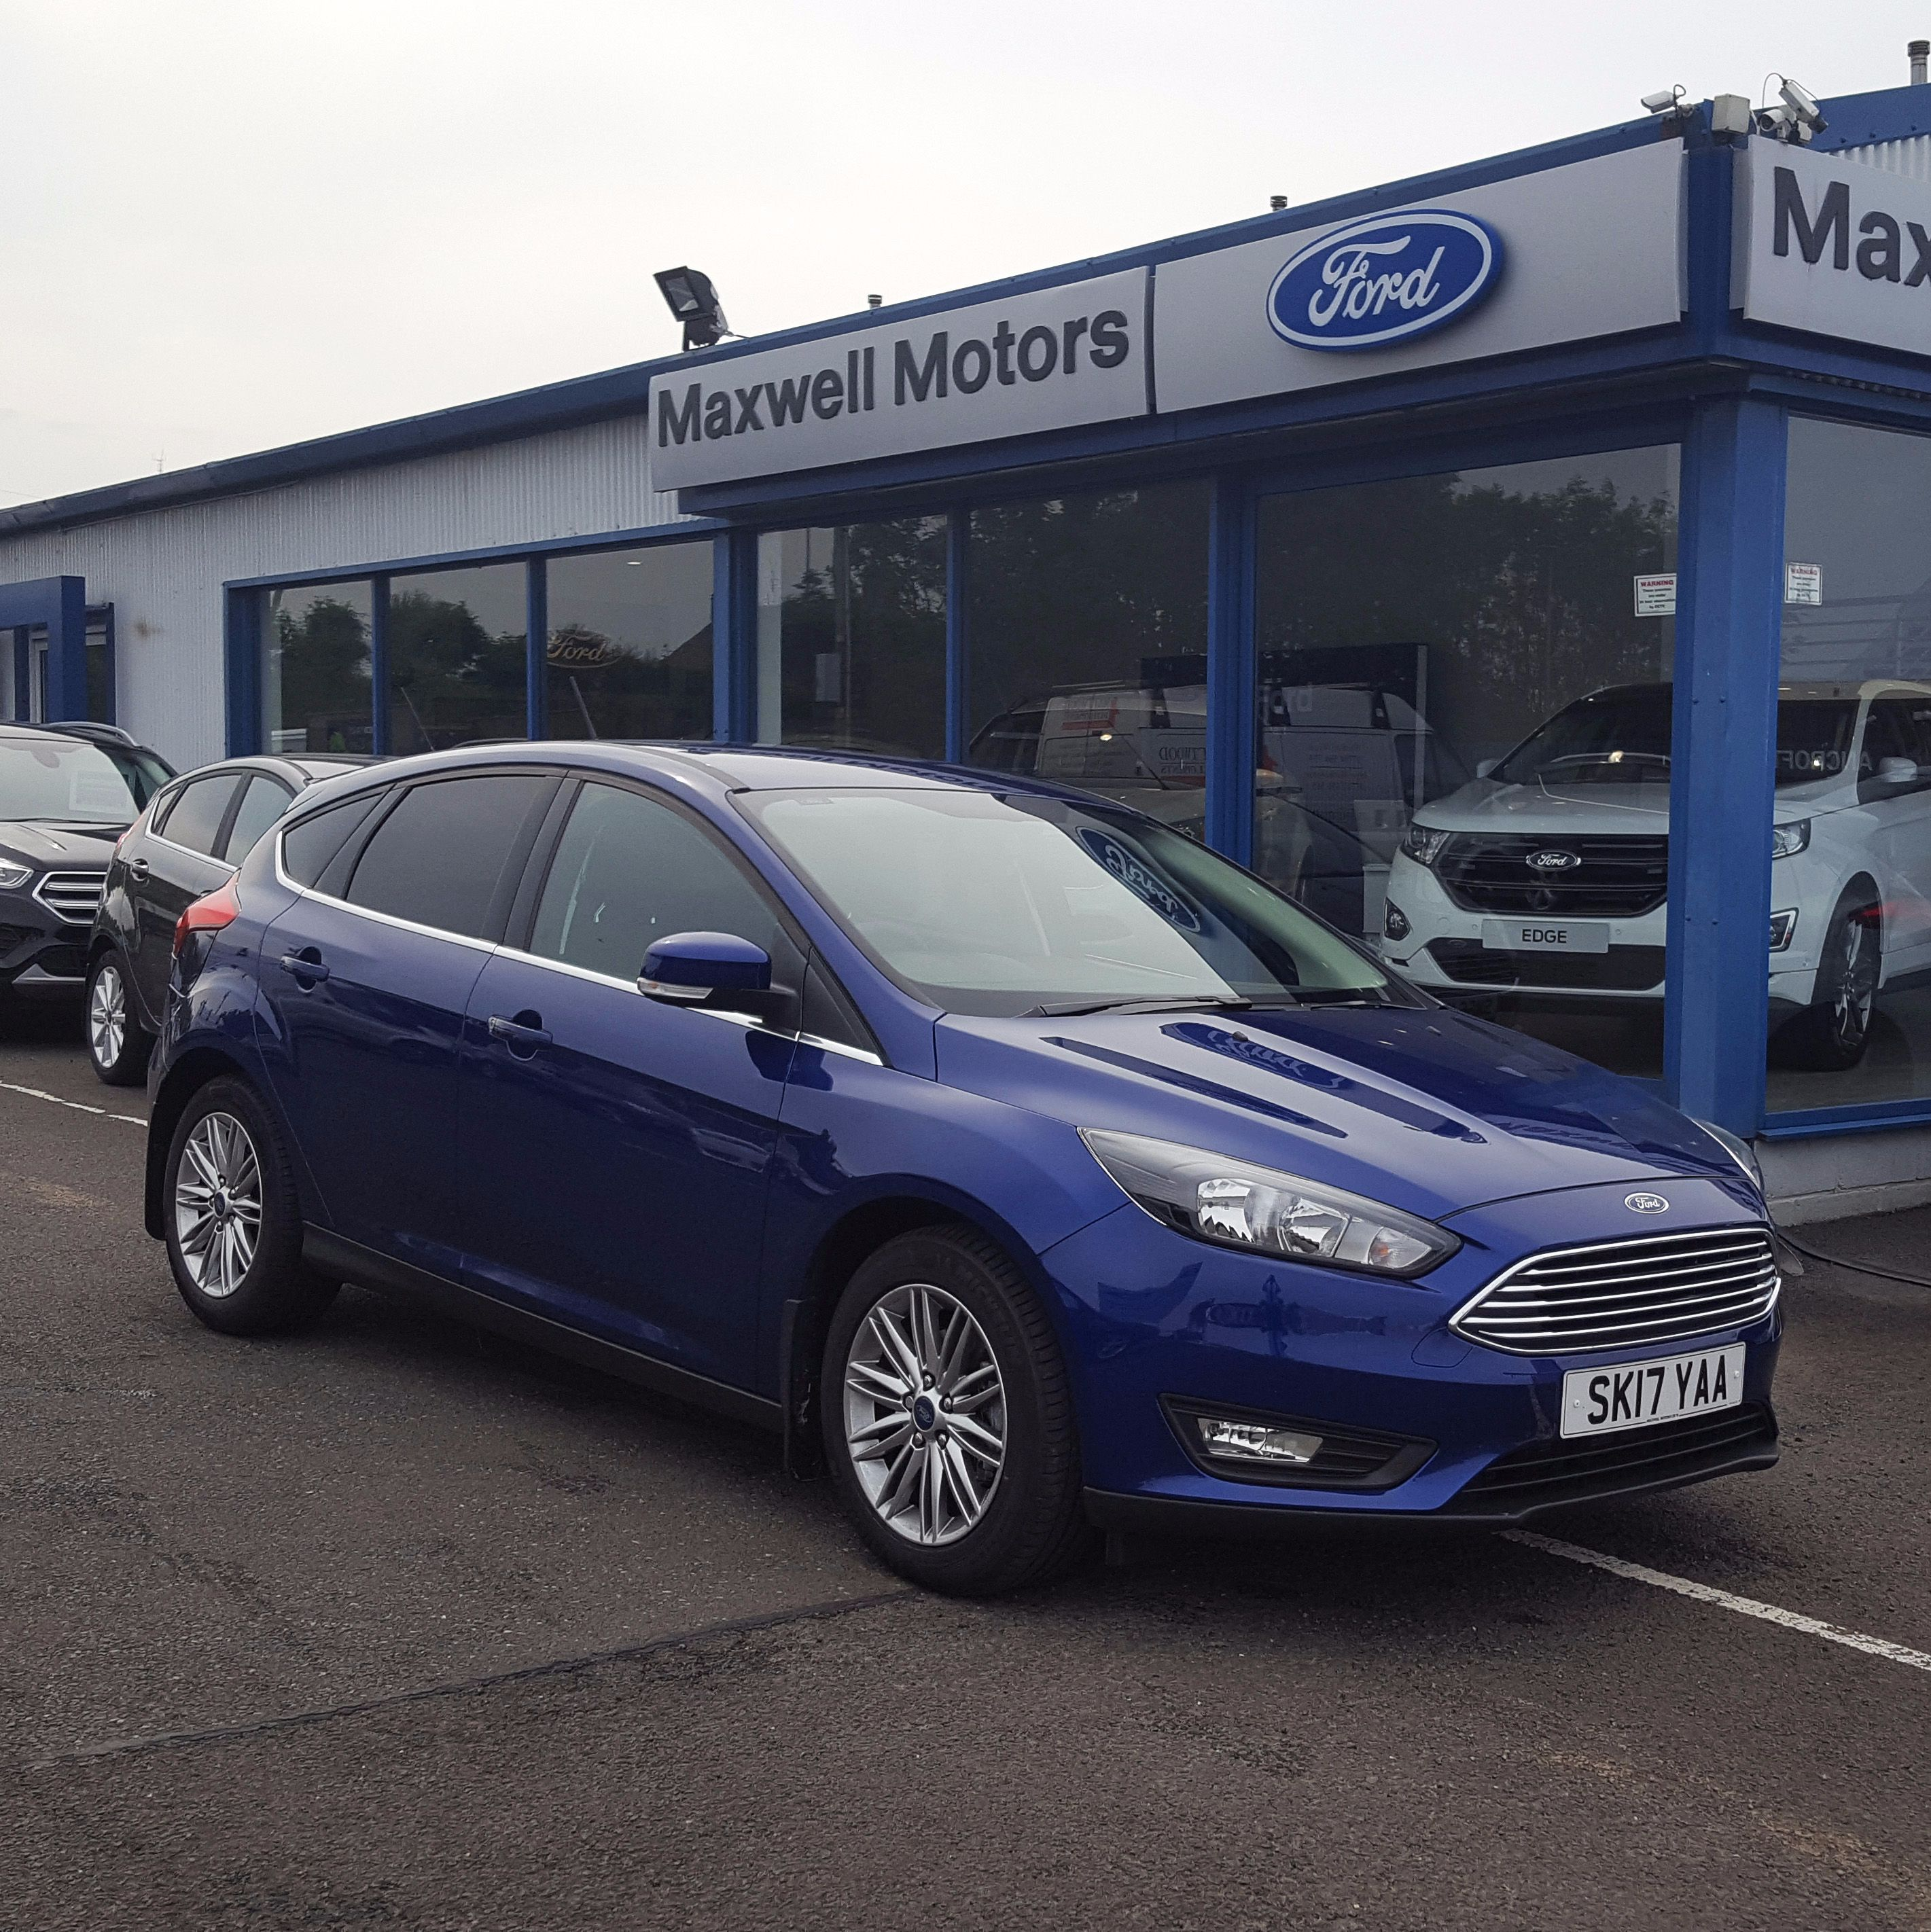 Ford FOCUS 1.5 TDCi 120PS Zetec Edition Manual